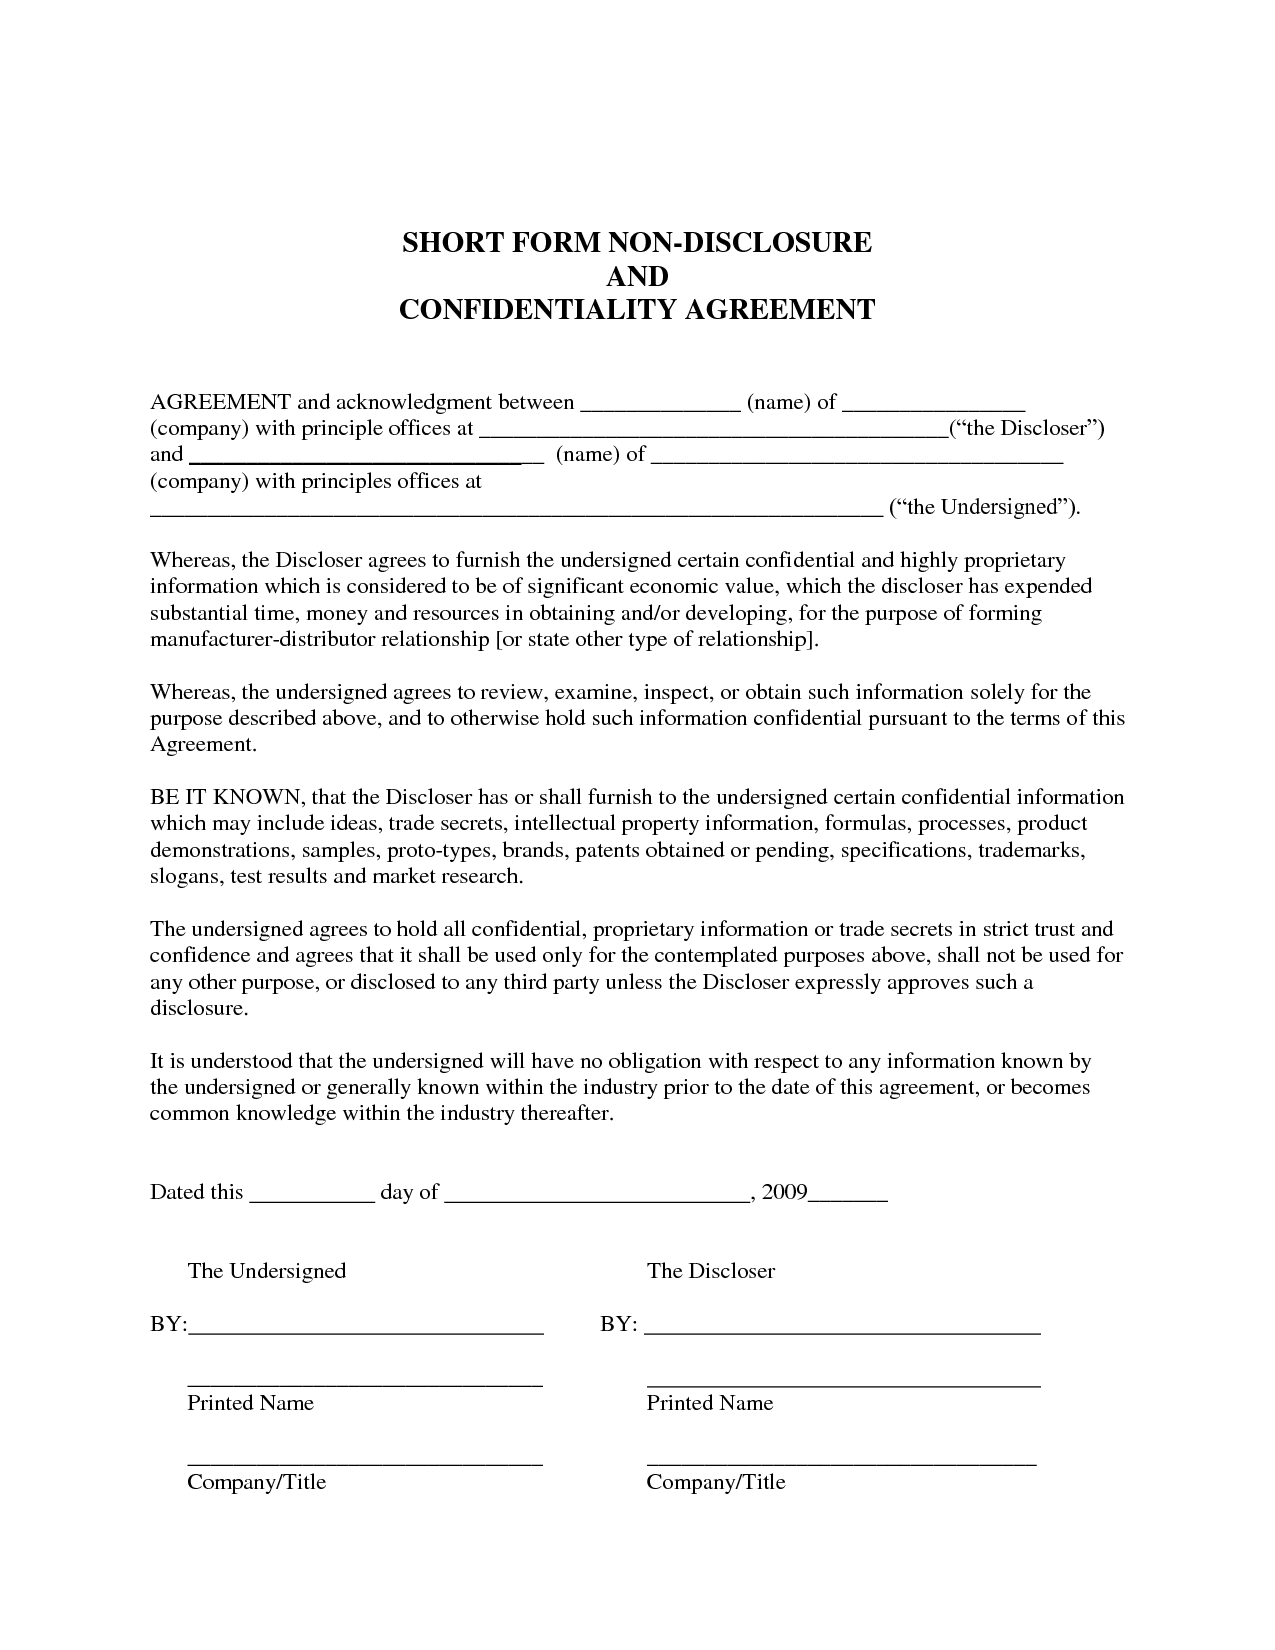 Sample Non Disclosure Agreement | Confidentiality Agreement Sampleu2026  Free Printable Non Disclosure Agreement